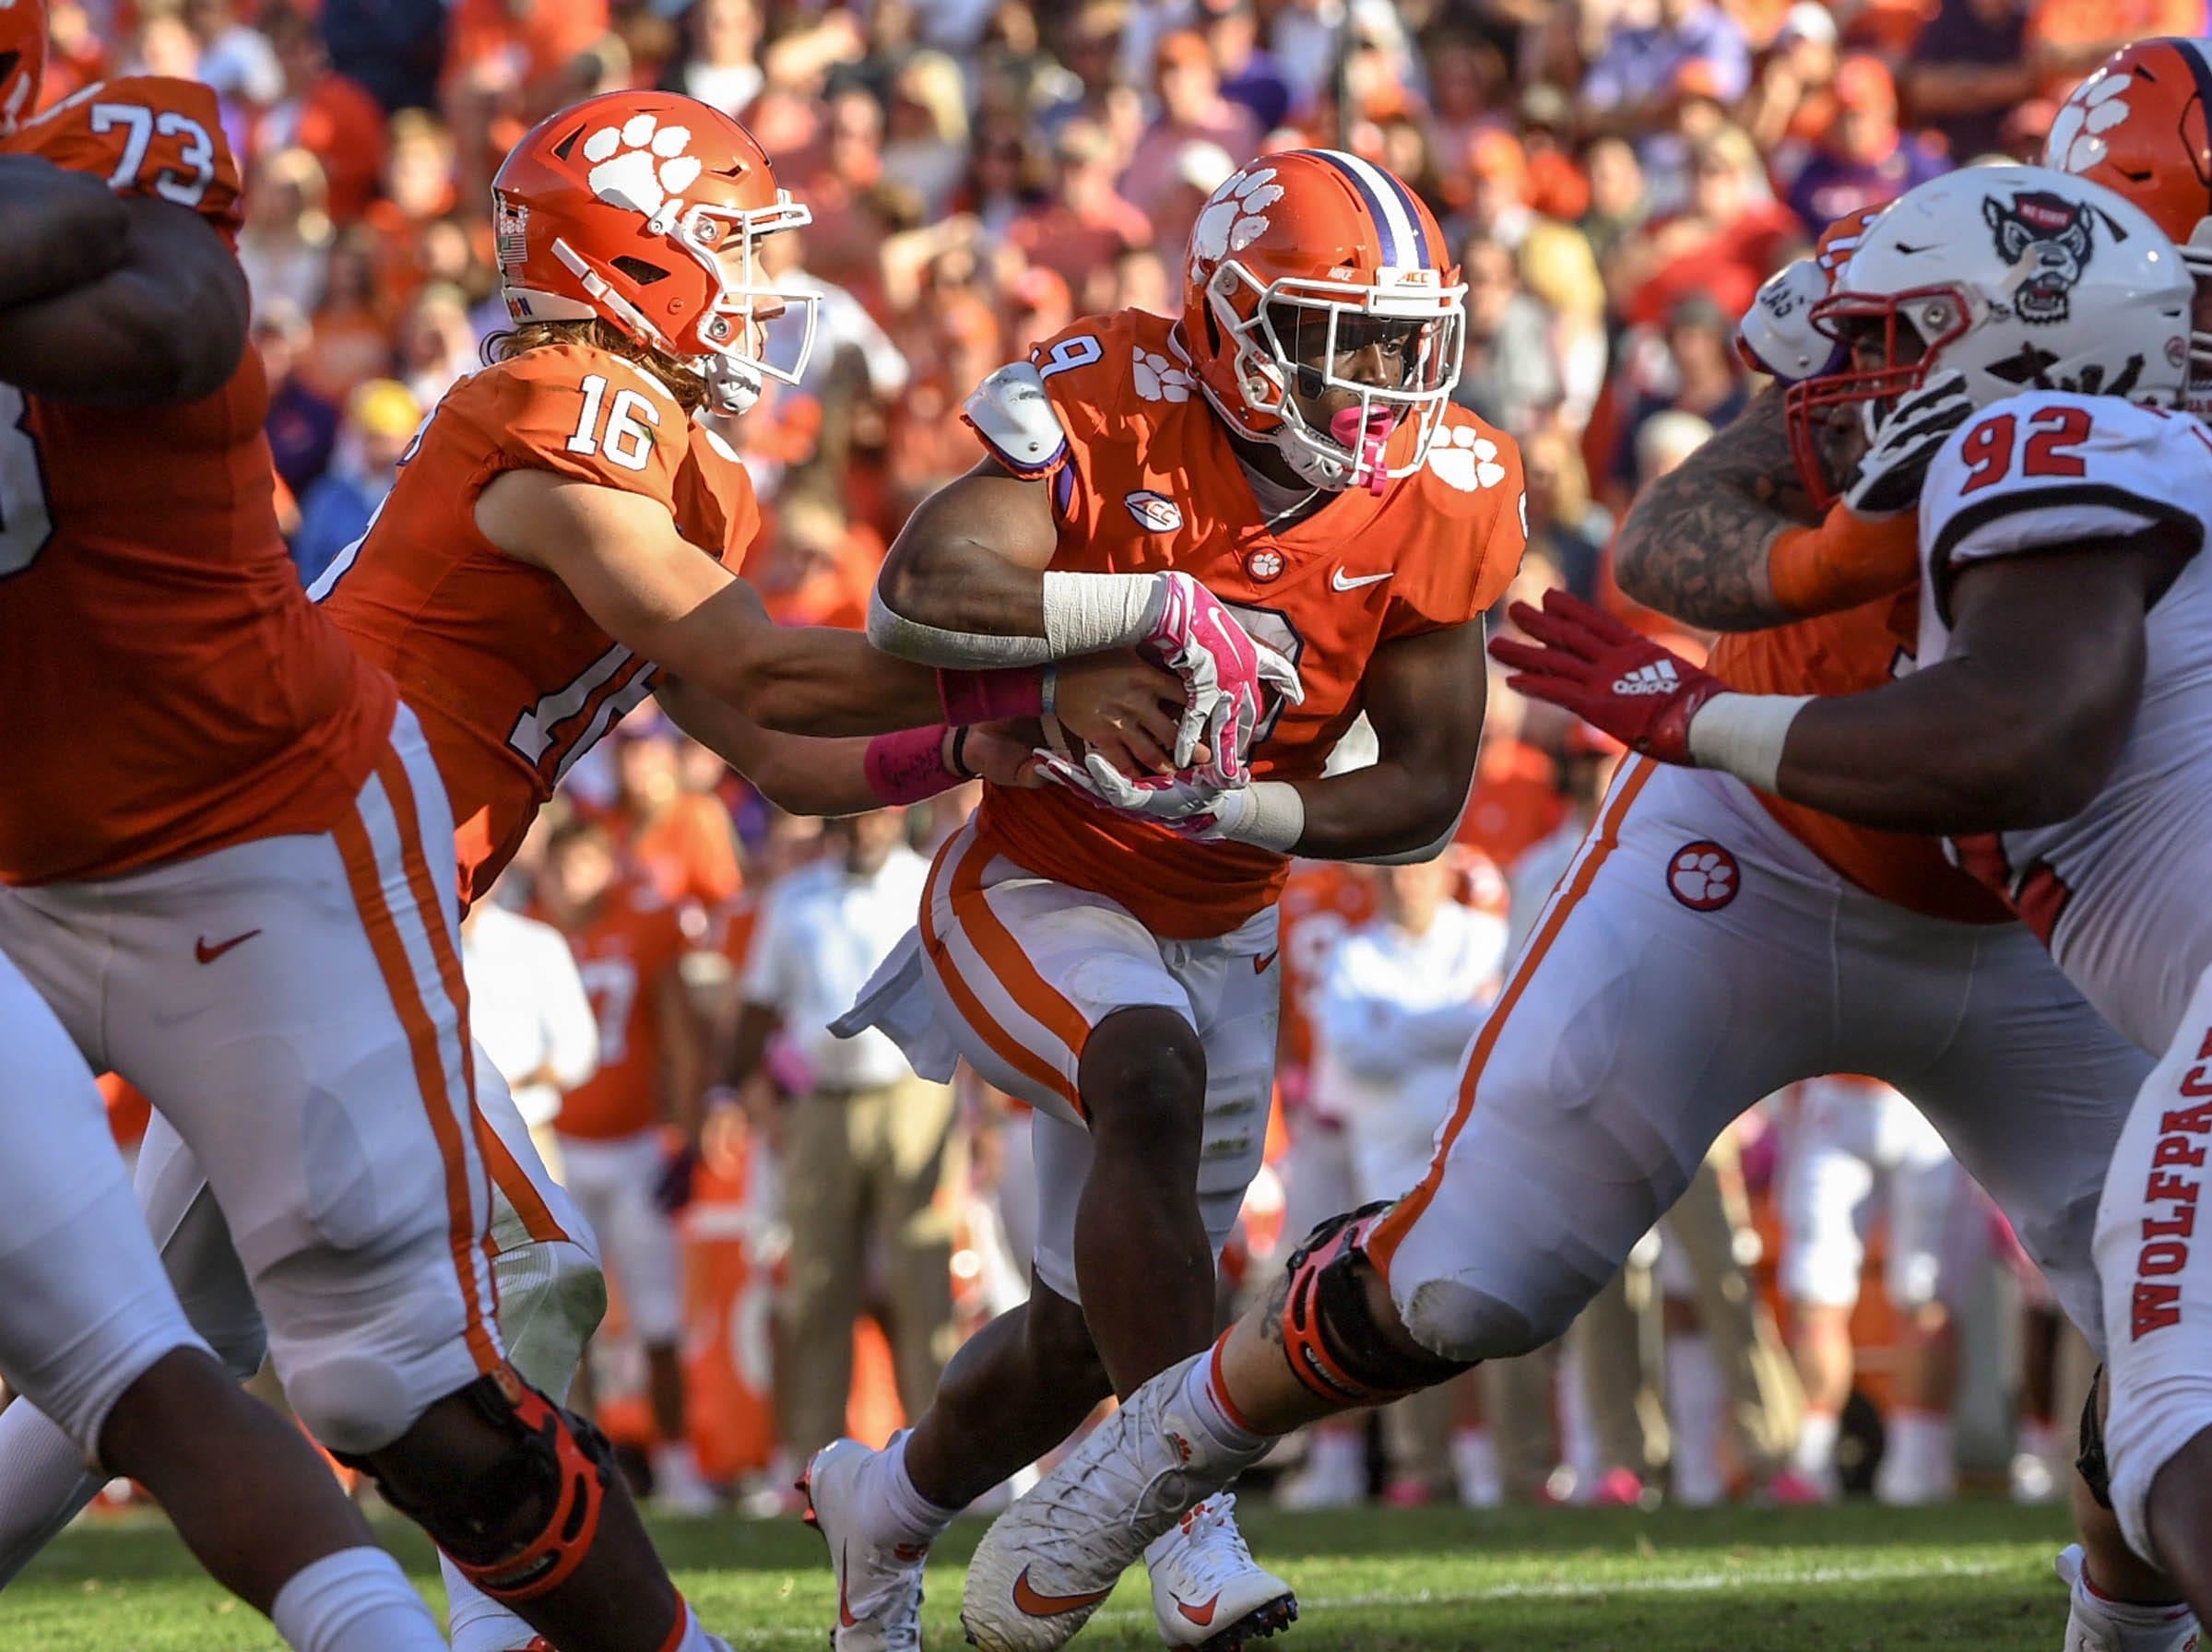 Clemson quarterback Trevor Lawrence (16) hands off to running back Travis Etienne (9) near NC State defensive tackle Larrell Murchison (92) during the second quarter in Memorial Stadium on Saturday, October 20, 2018.